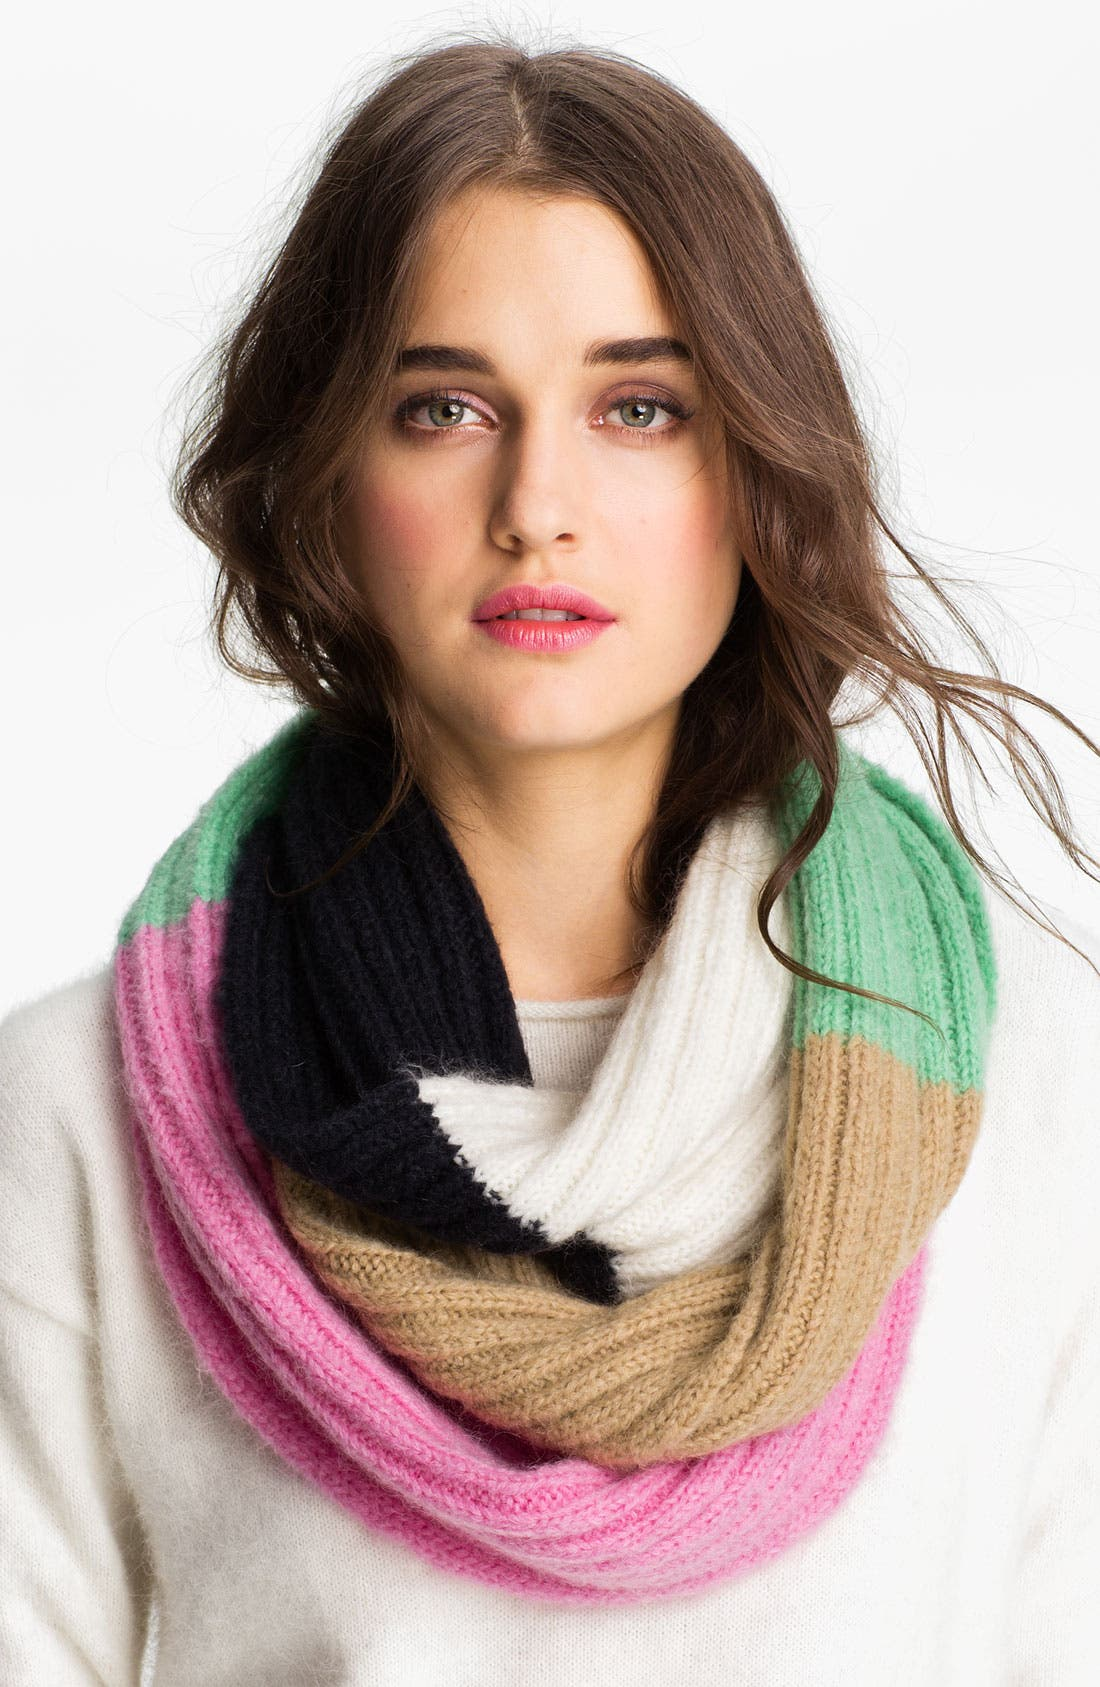 Alternate Image 1 Selected - Juicy Couture Colorblock Infinity Scarf